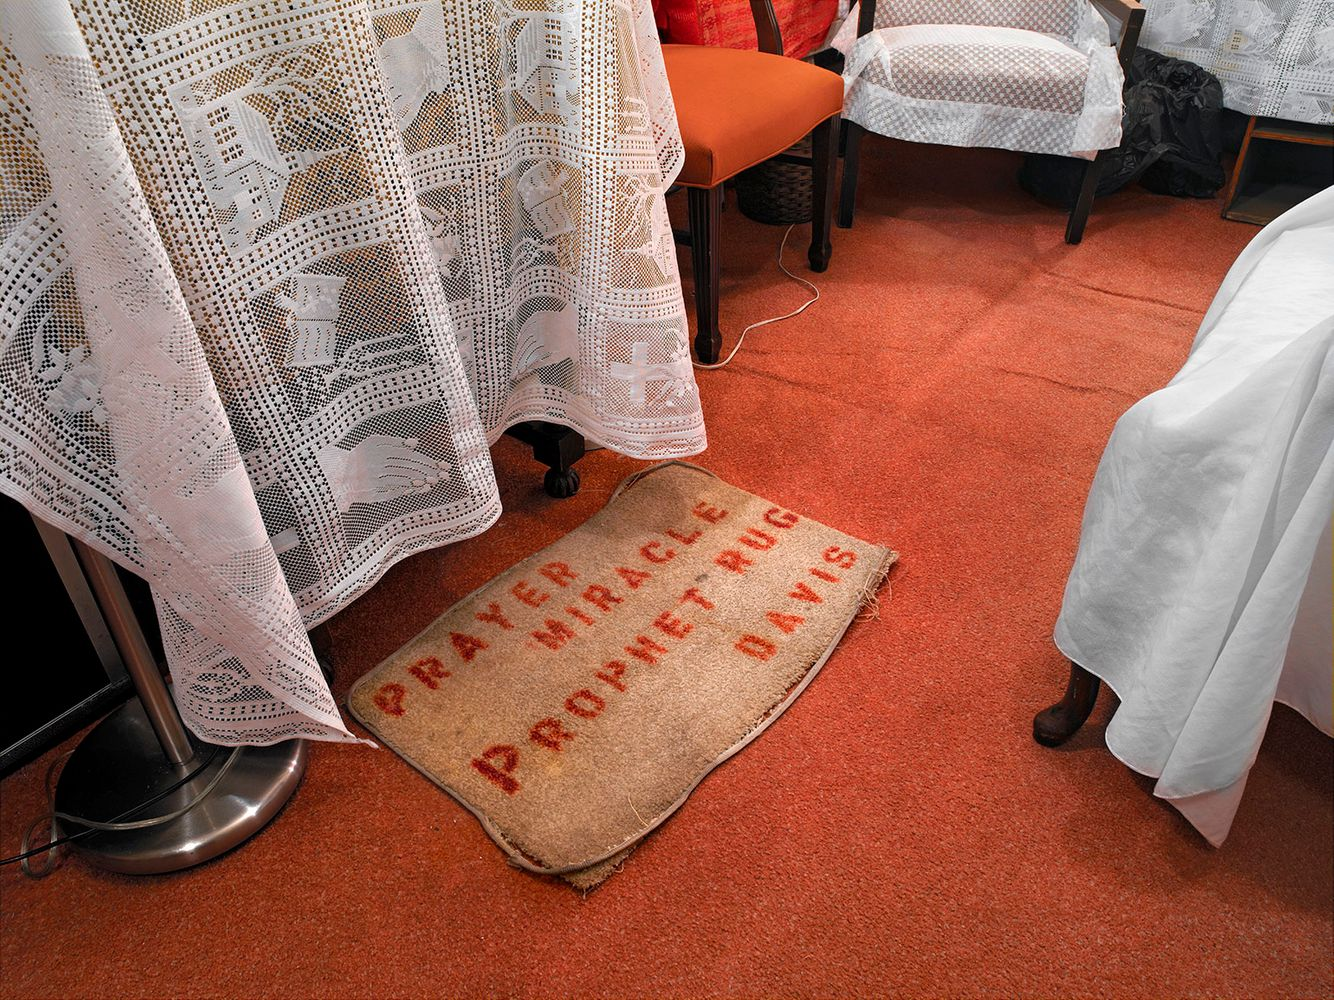 Prayer Prophet Rug, Genesis M.B. Church,  727 W. 69th, Chicago 2005